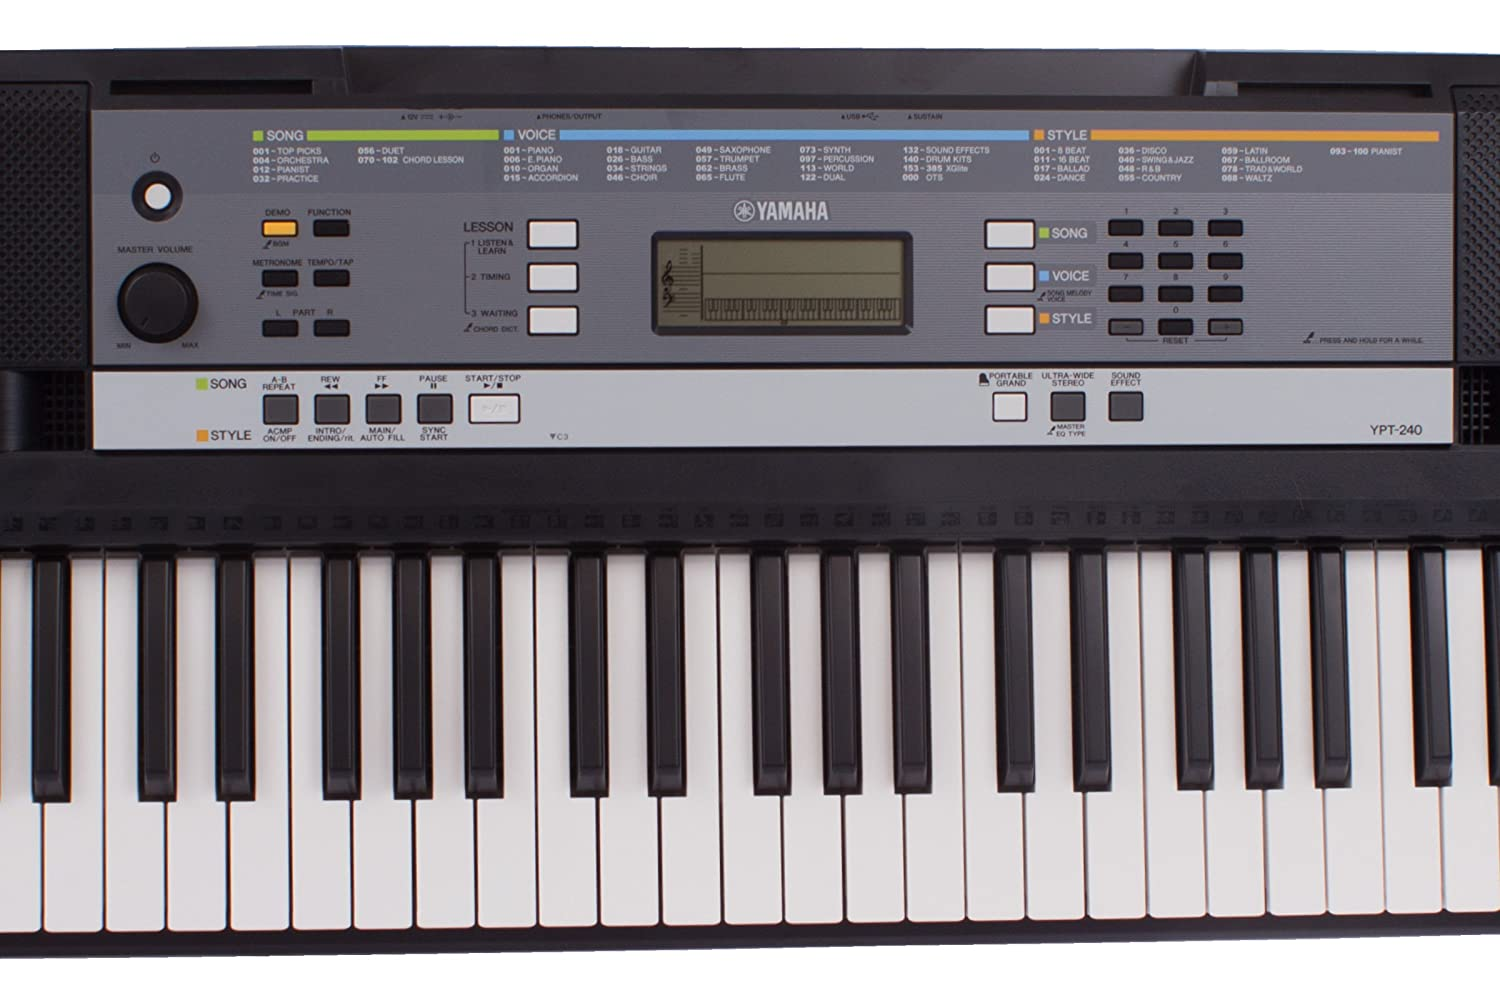 yamaha digital musique clavier piano ypt320 240 connexion a iphone ipad ou ipod touch possible. Black Bedroom Furniture Sets. Home Design Ideas